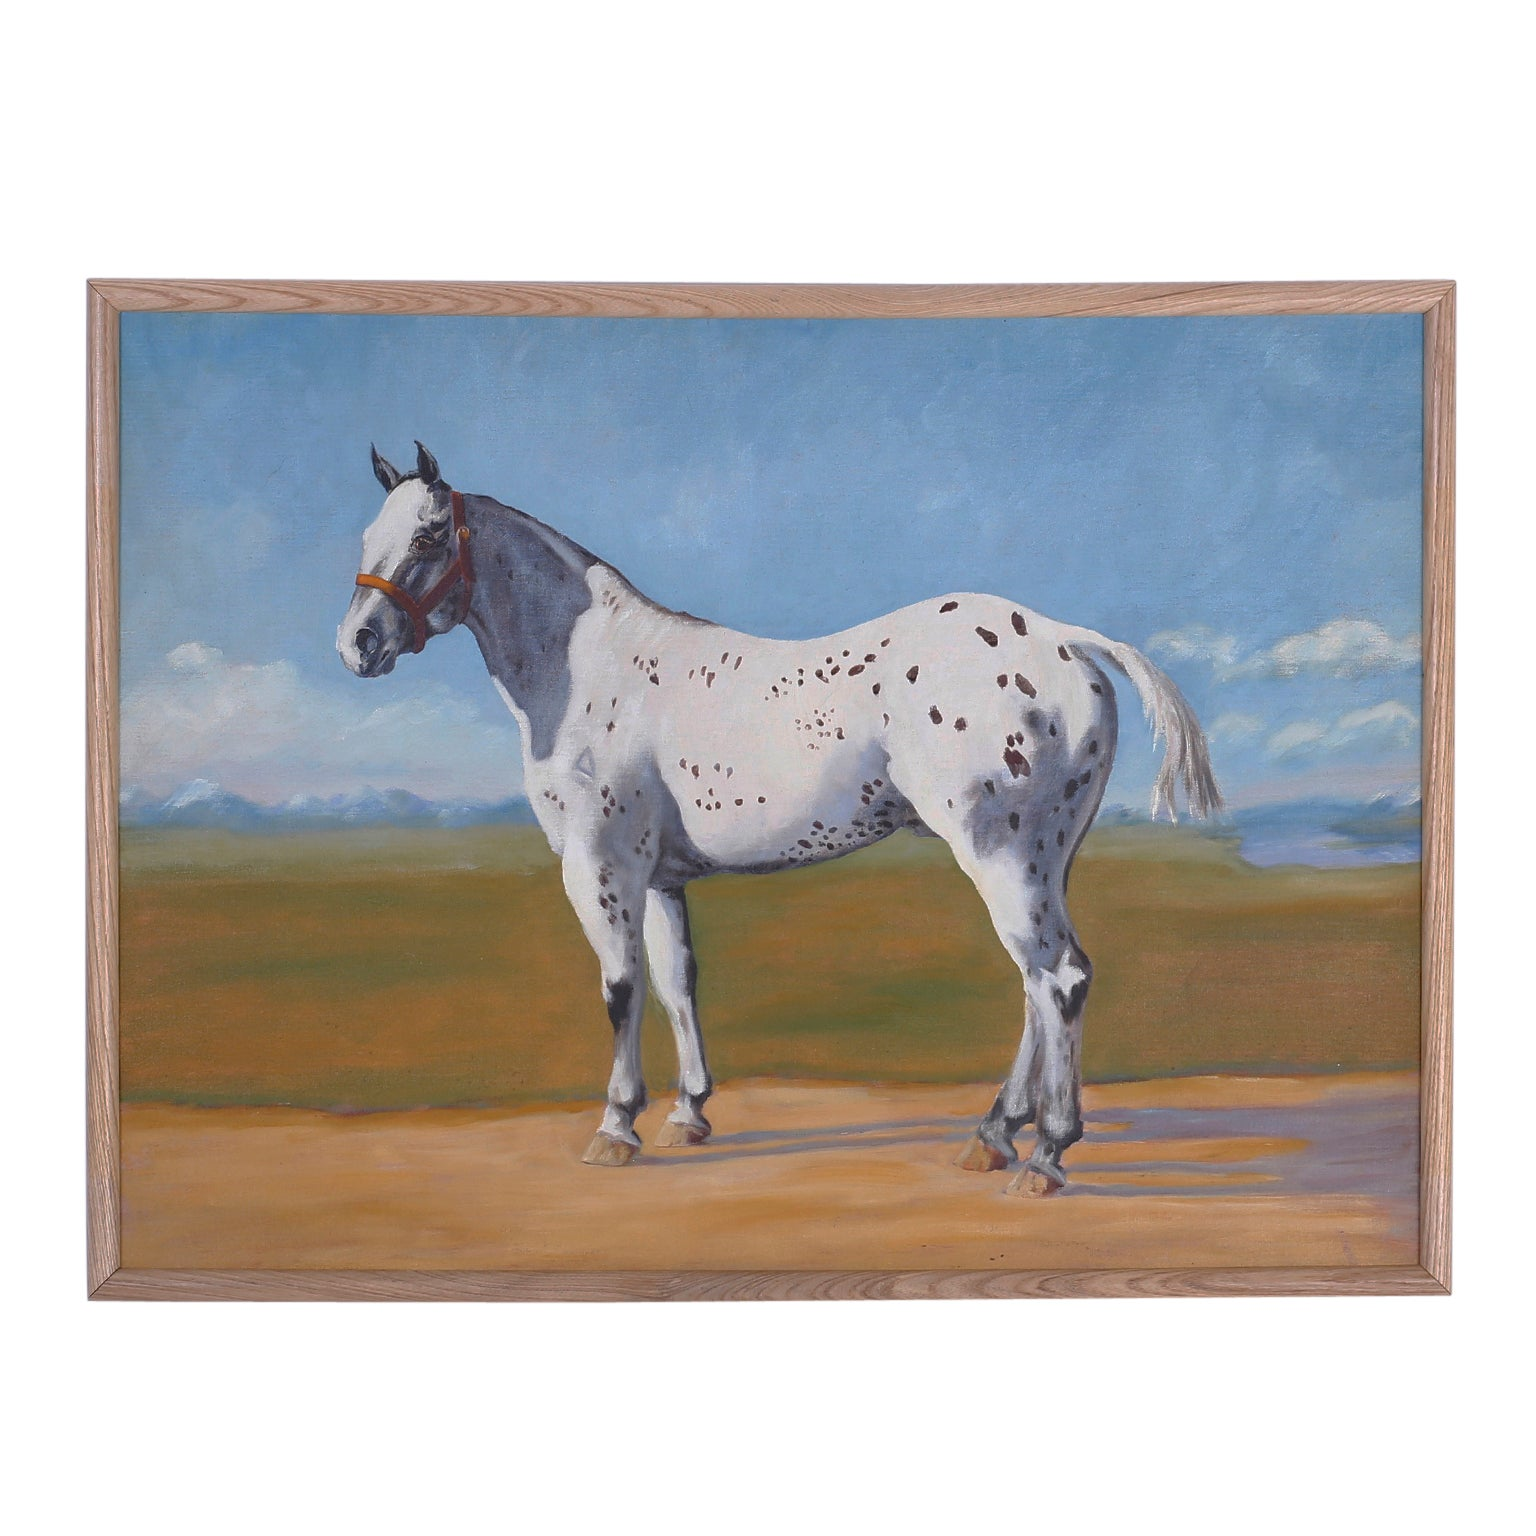 Oil Painting of a Horse on Board